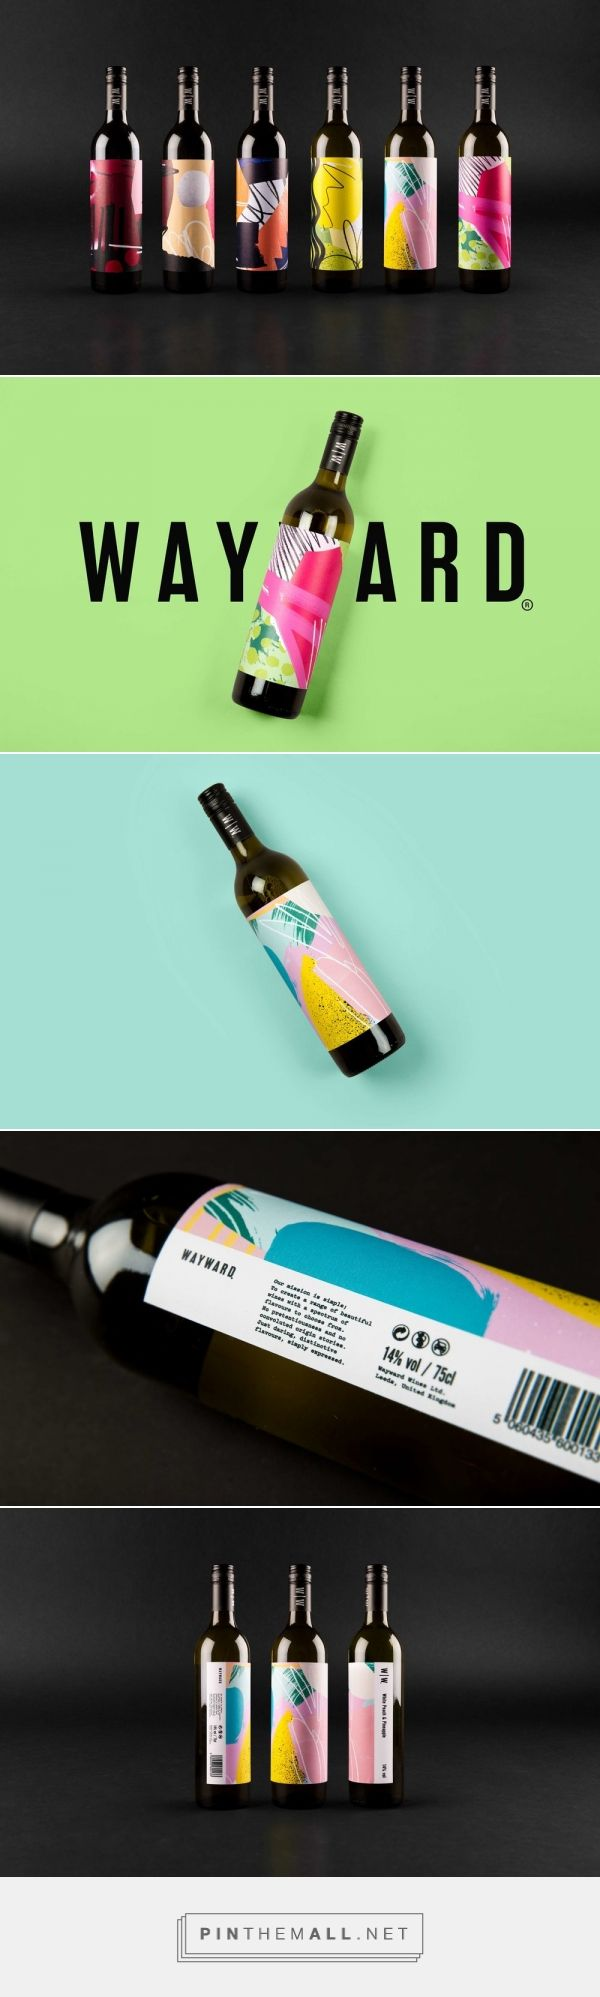 Wayward Wines Is Set to Disrupt The Wine Category — The Dieline | Packaging & Branding Design & Innovation News - created via https://pinthemall.net